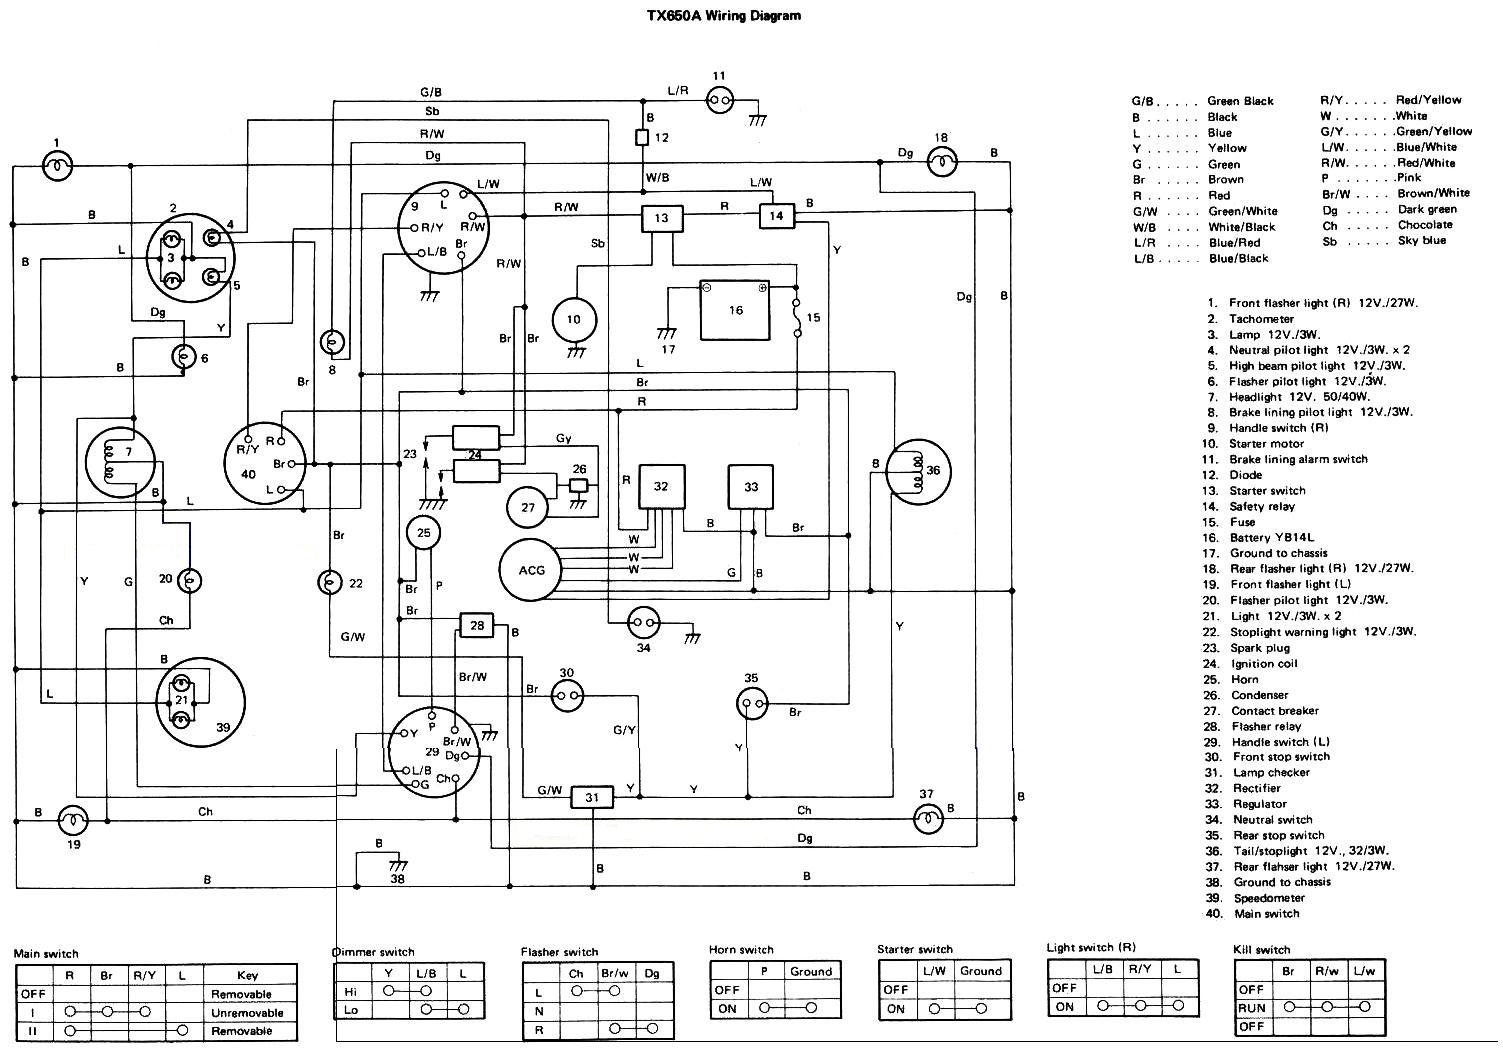 wiring diagrams 1974 tx650 jpg